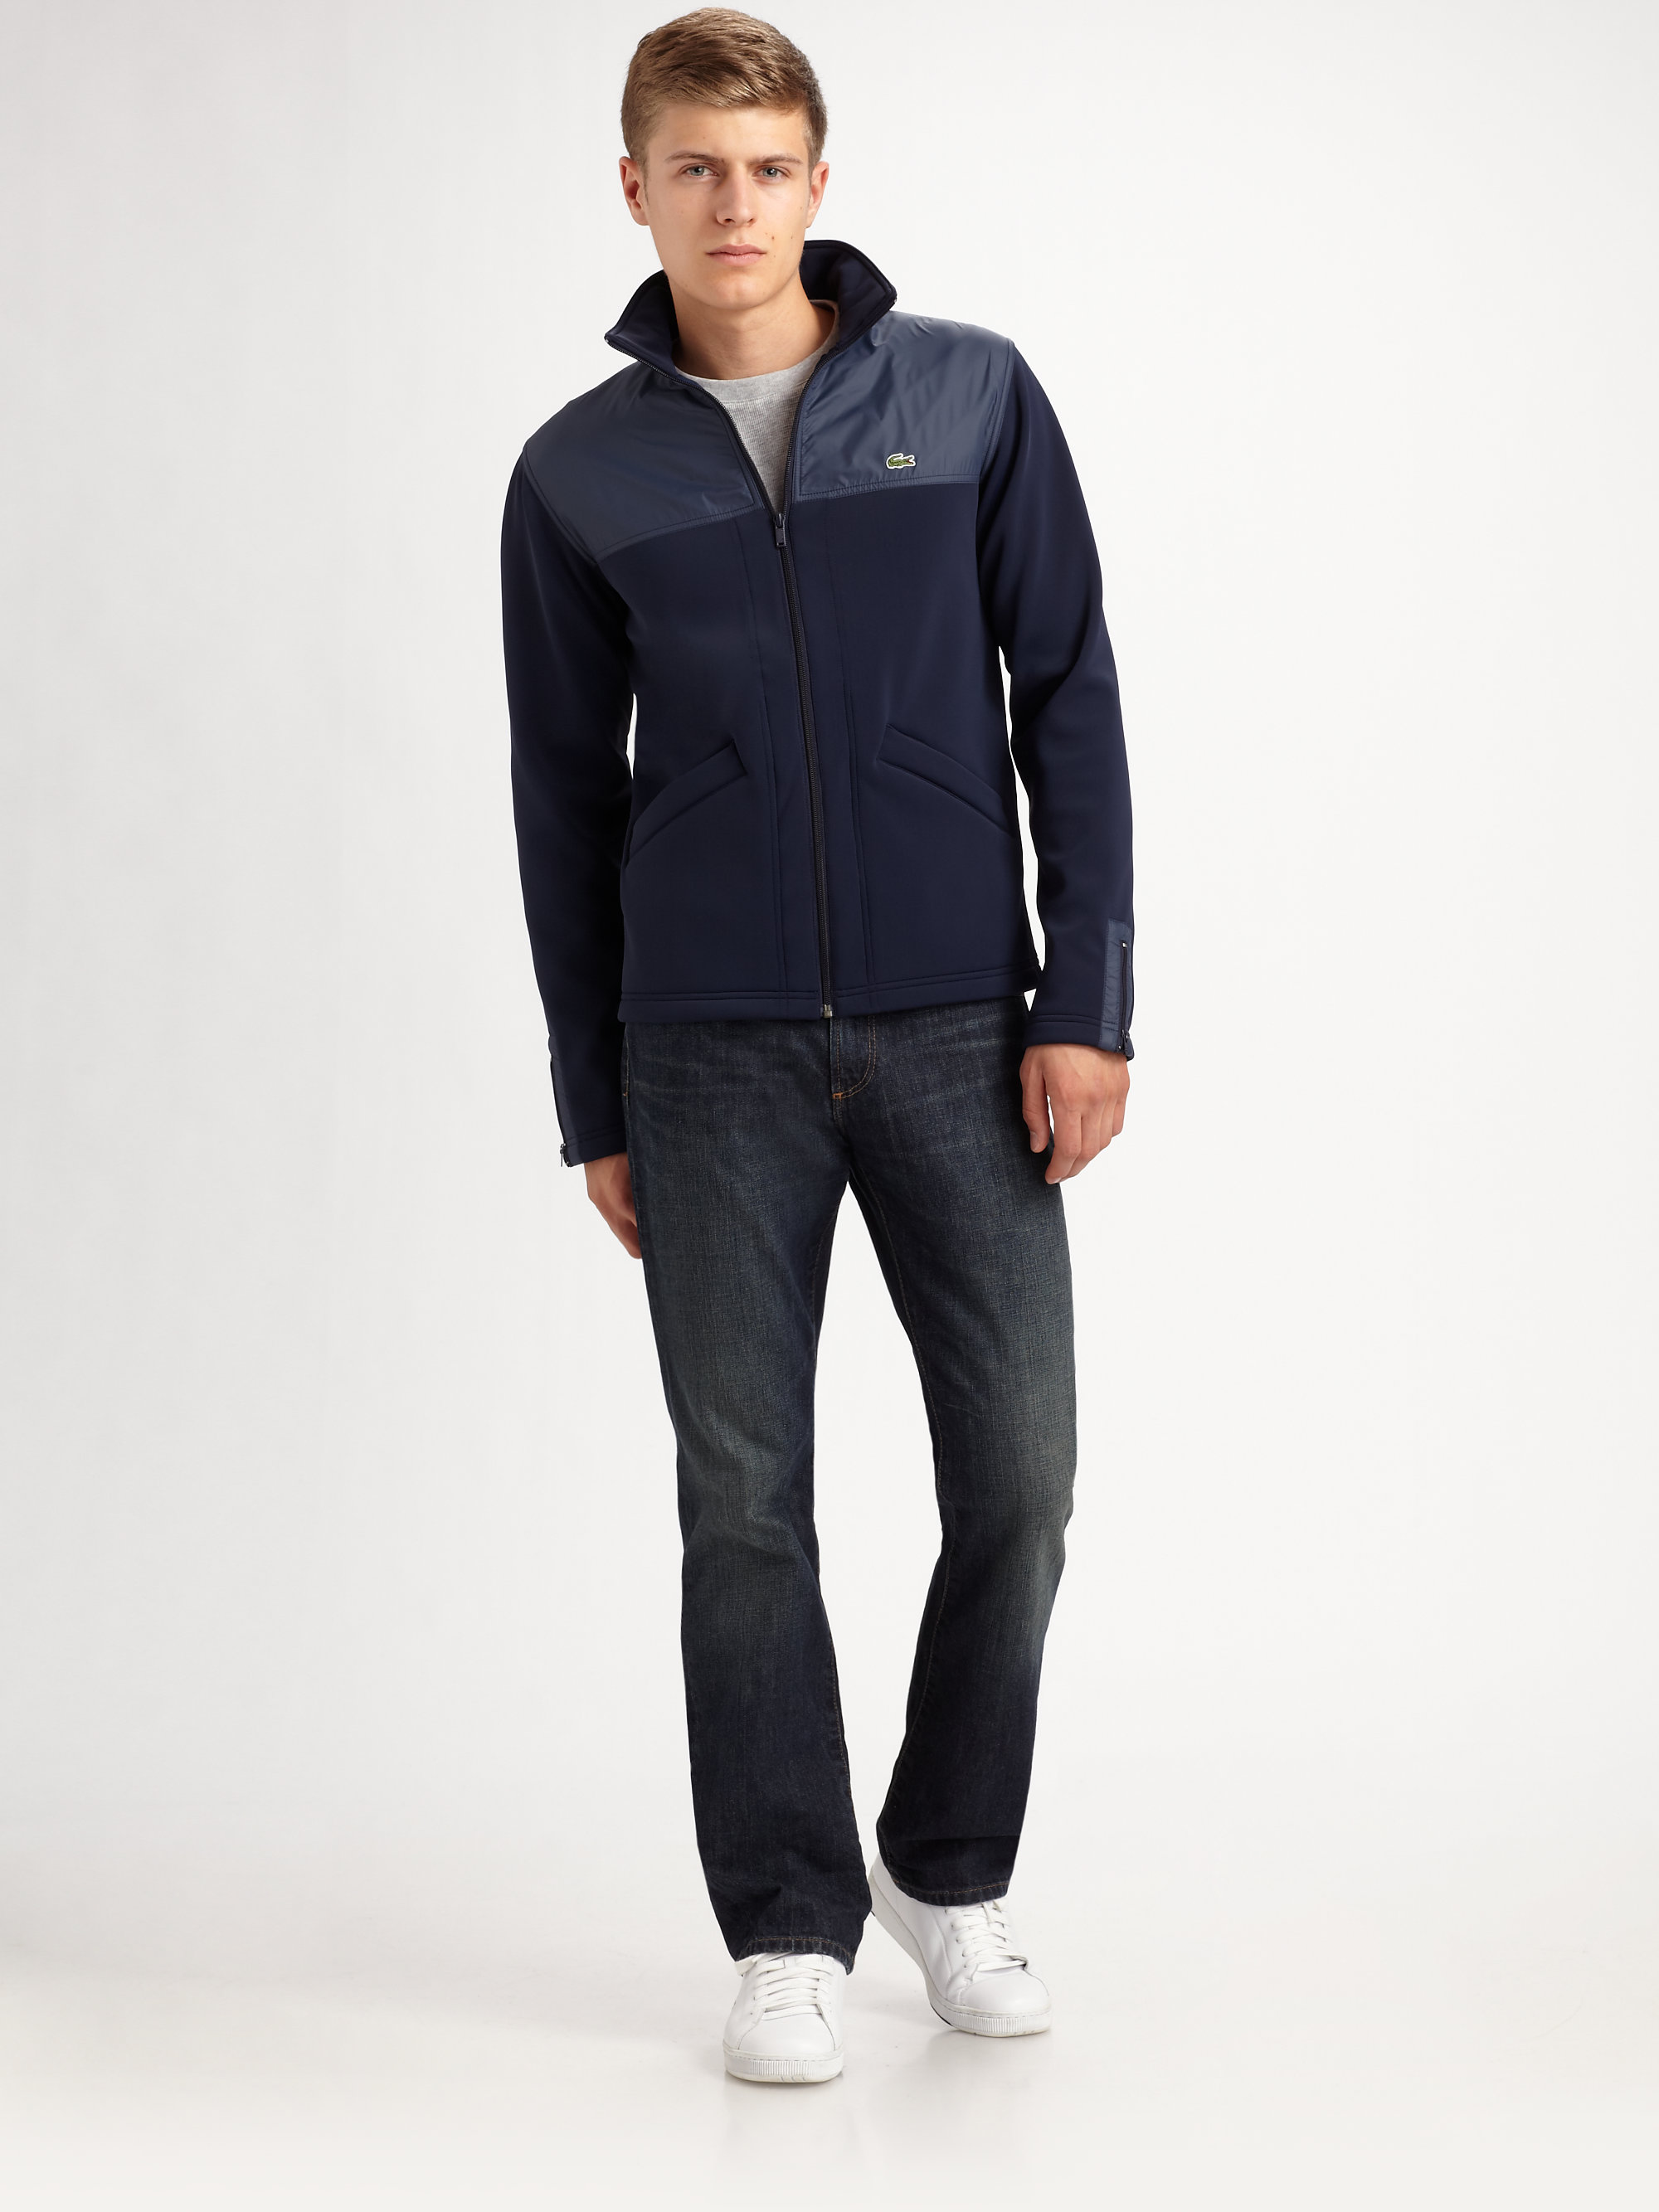 North Face Lightweight Jacket